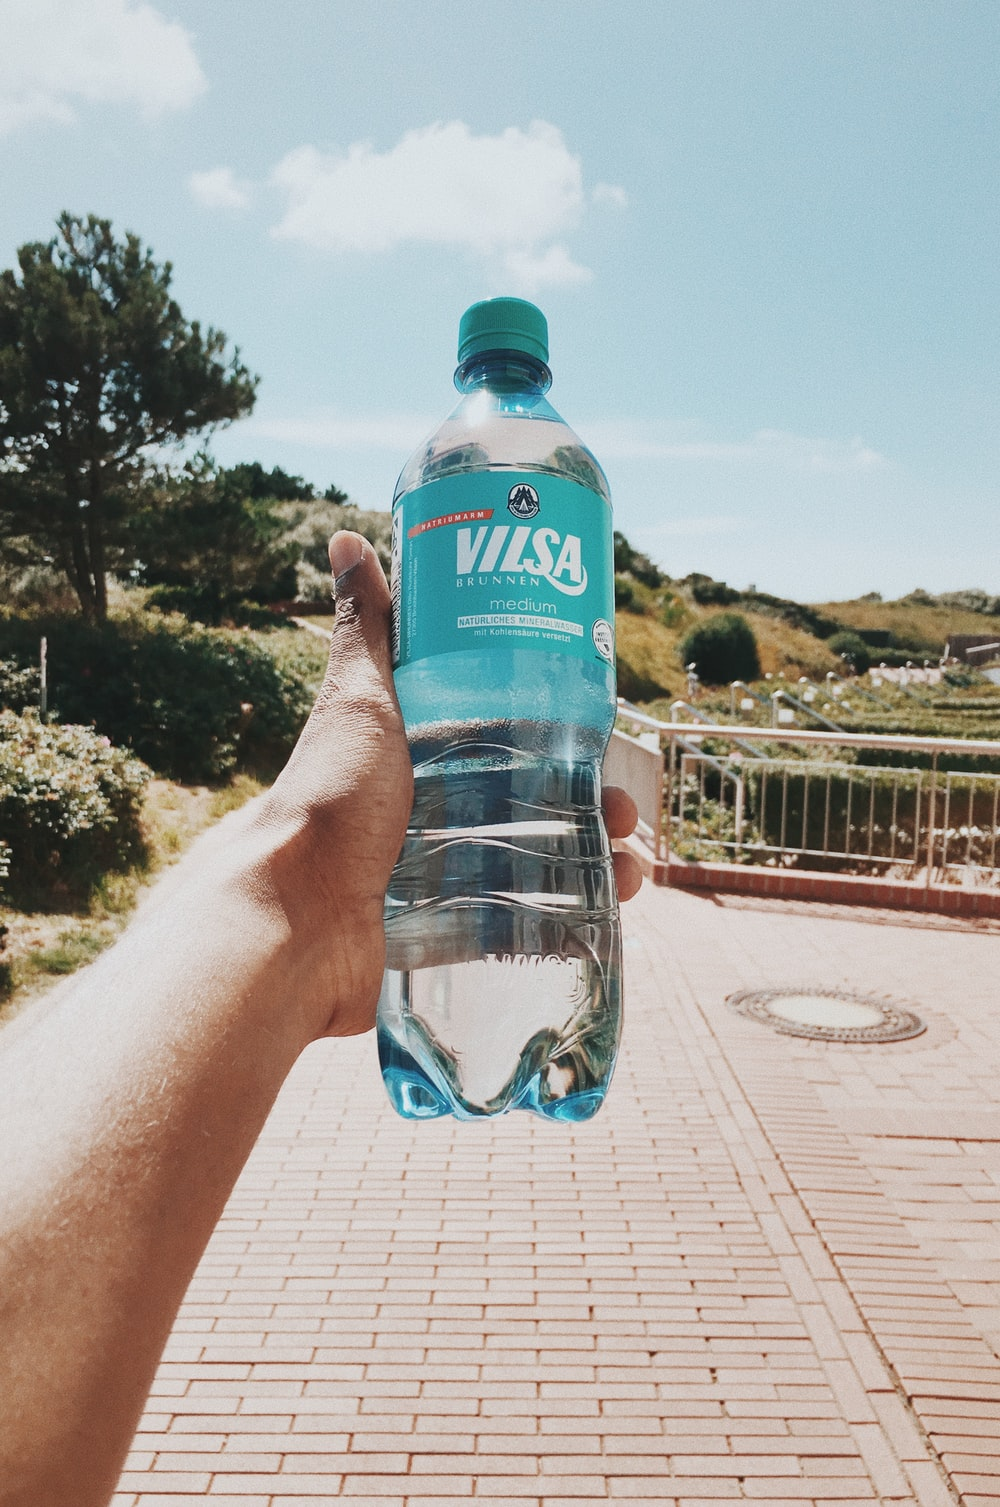 filled Vilsa bottle